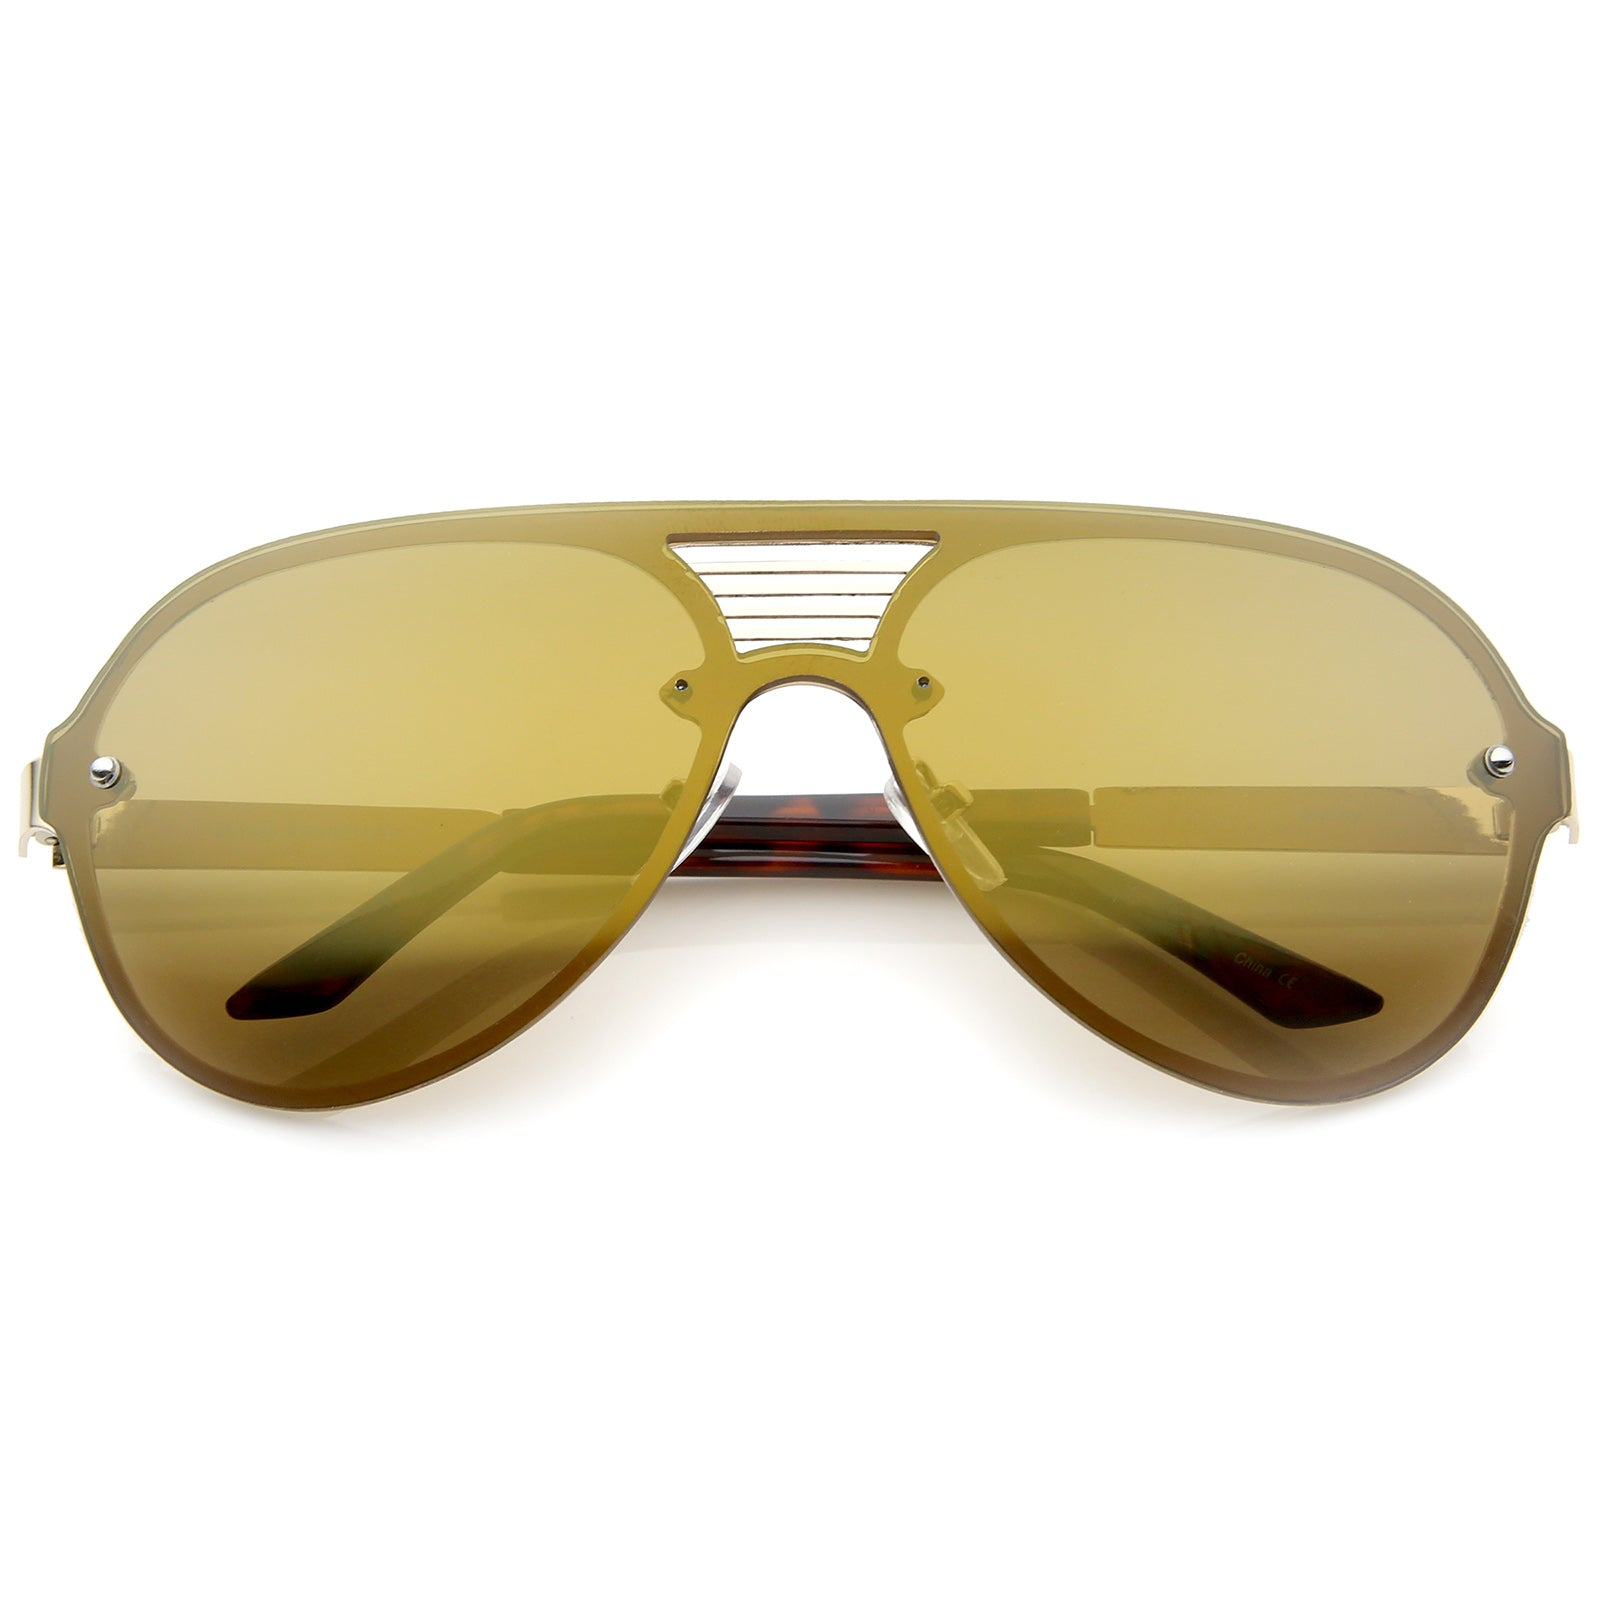 Rimless Flat Top Metal Temple Iridescent Mirror Lens Aviator Sunglasses 59mm - sunglass.la - 7